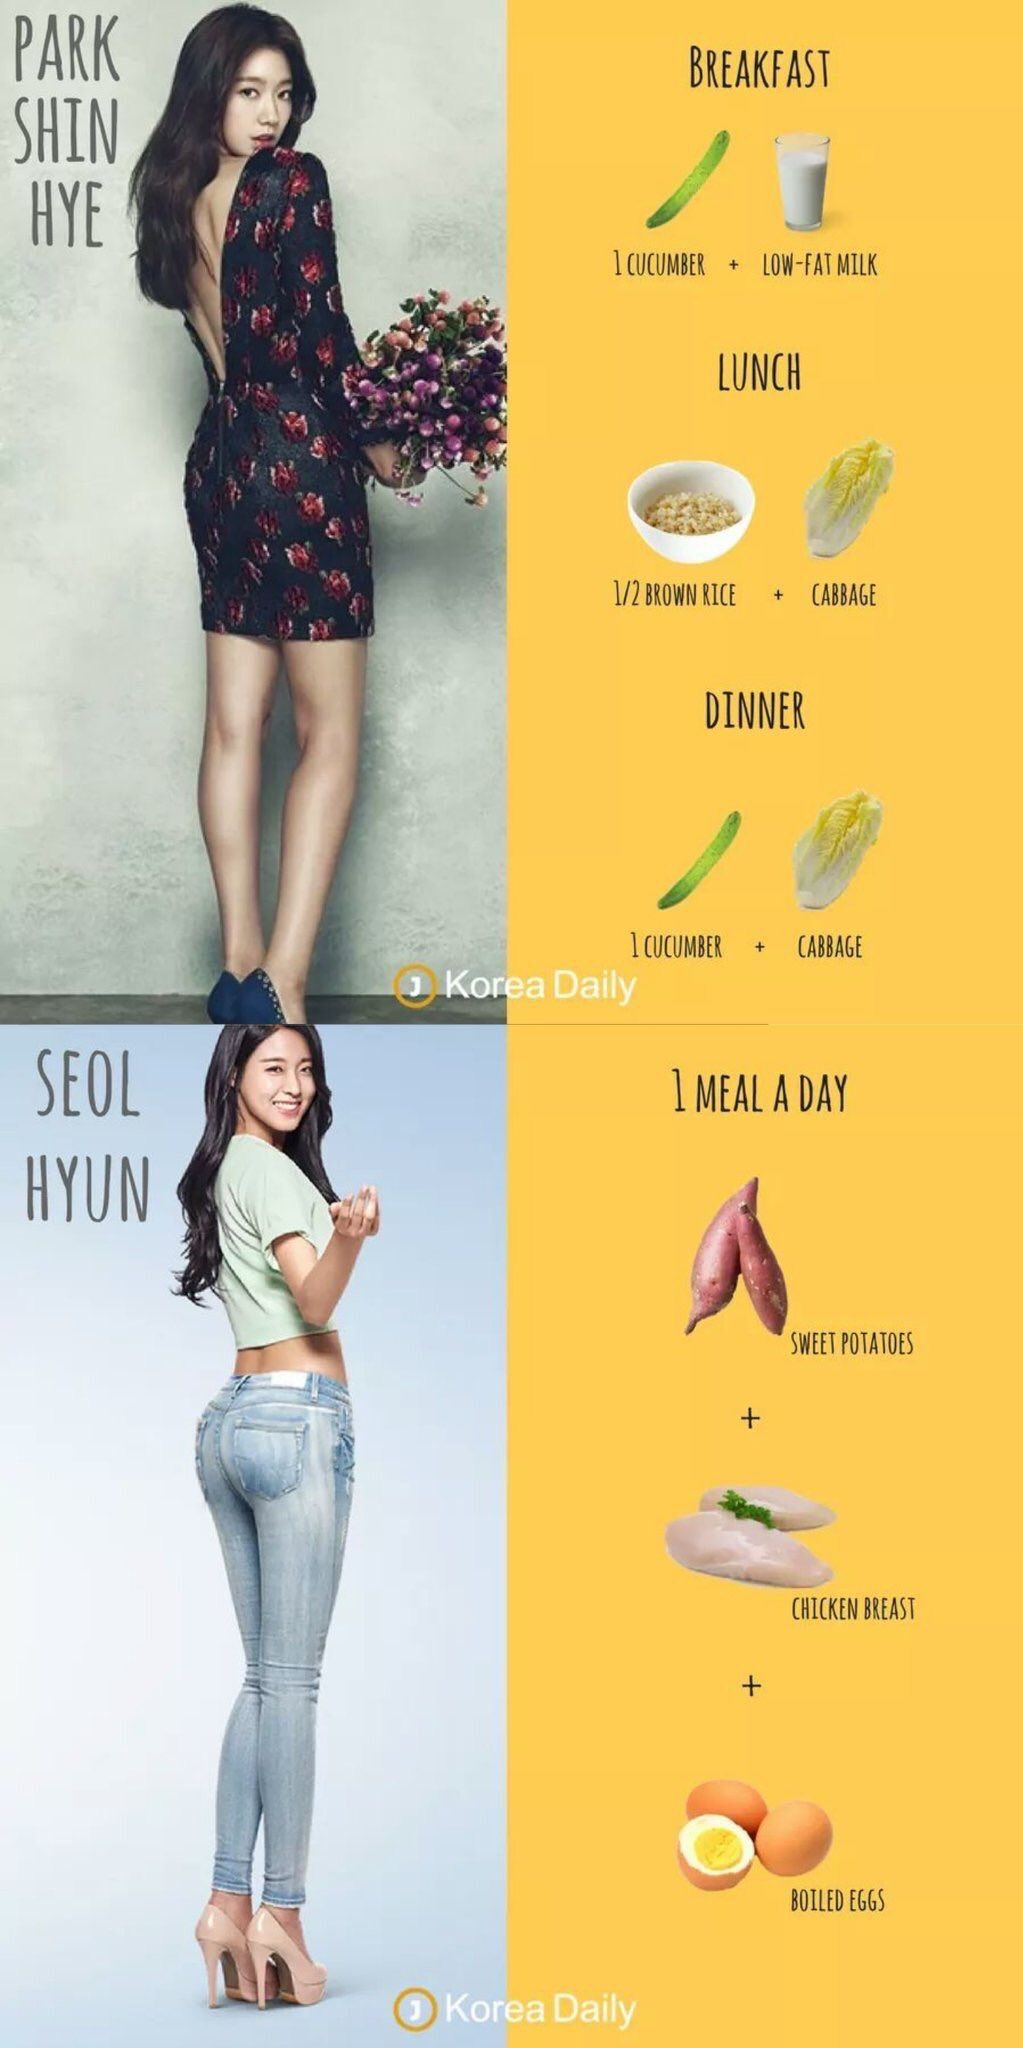 The IU diet and her weight loss explained